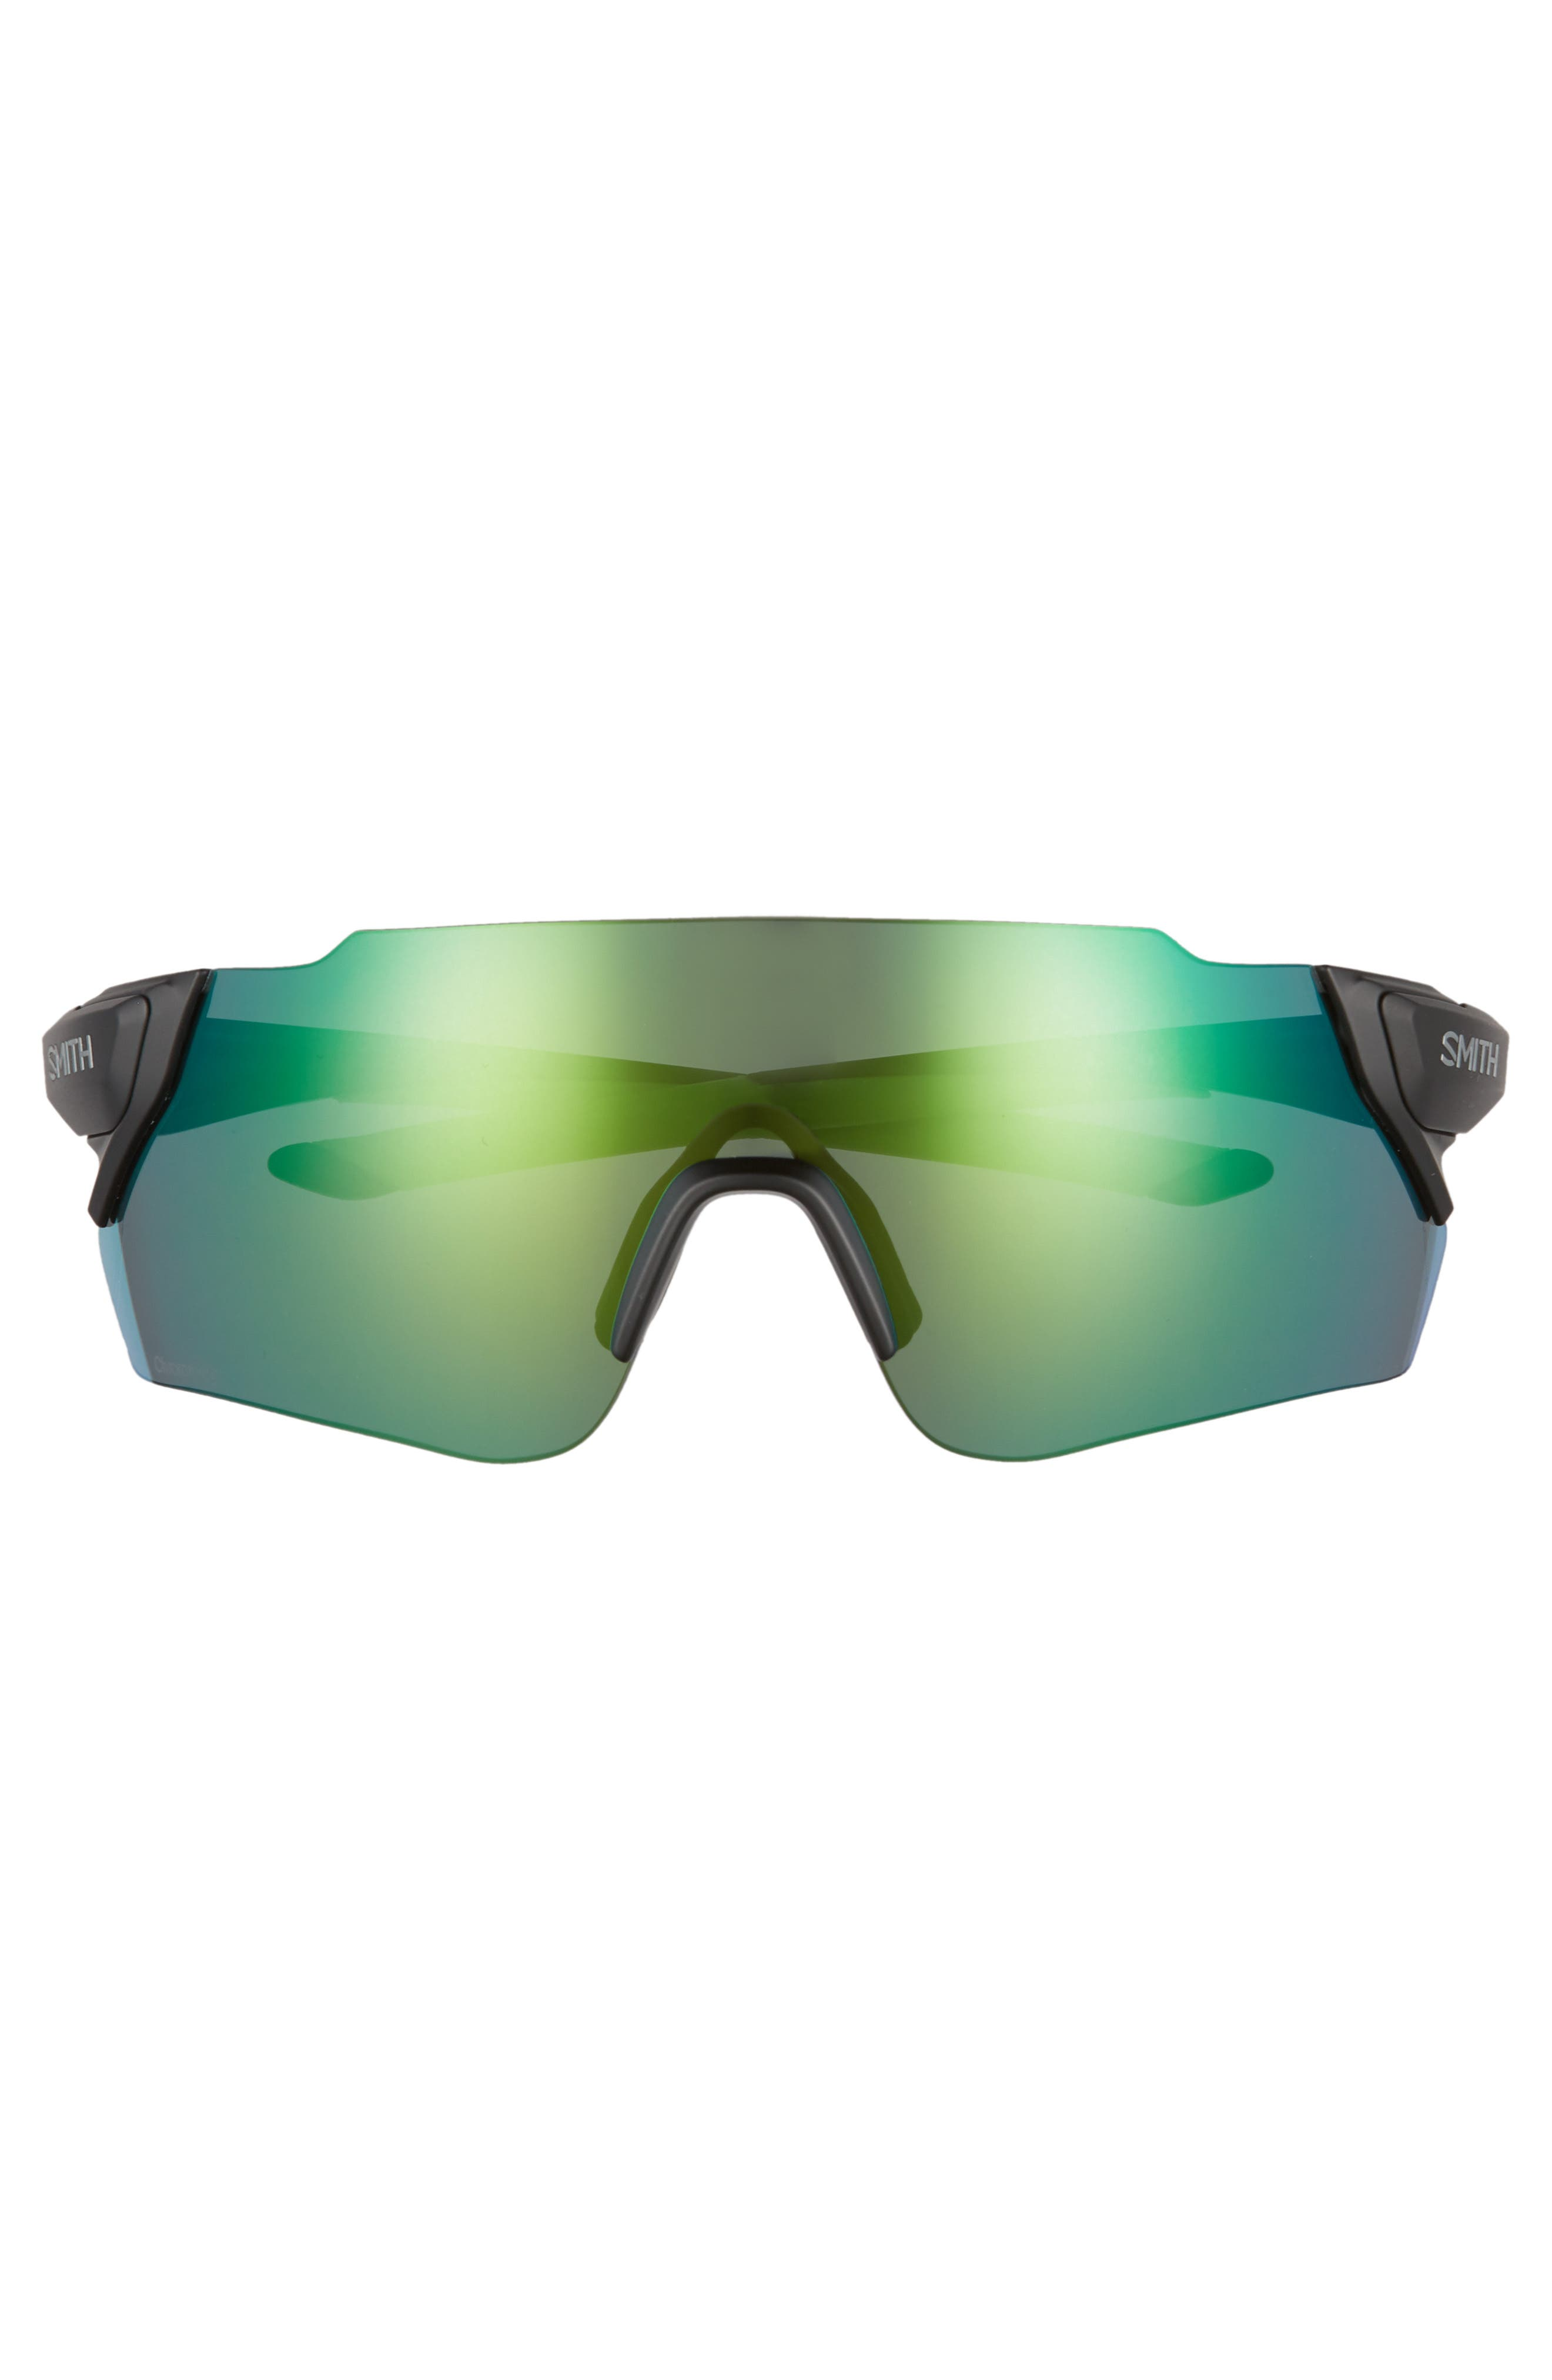 Attack Max 130mm ChromaPop<sup>™</sup> Shield Sunglasses,                             Alternate thumbnail 2, color,                             MATTE BLACK REACTOR